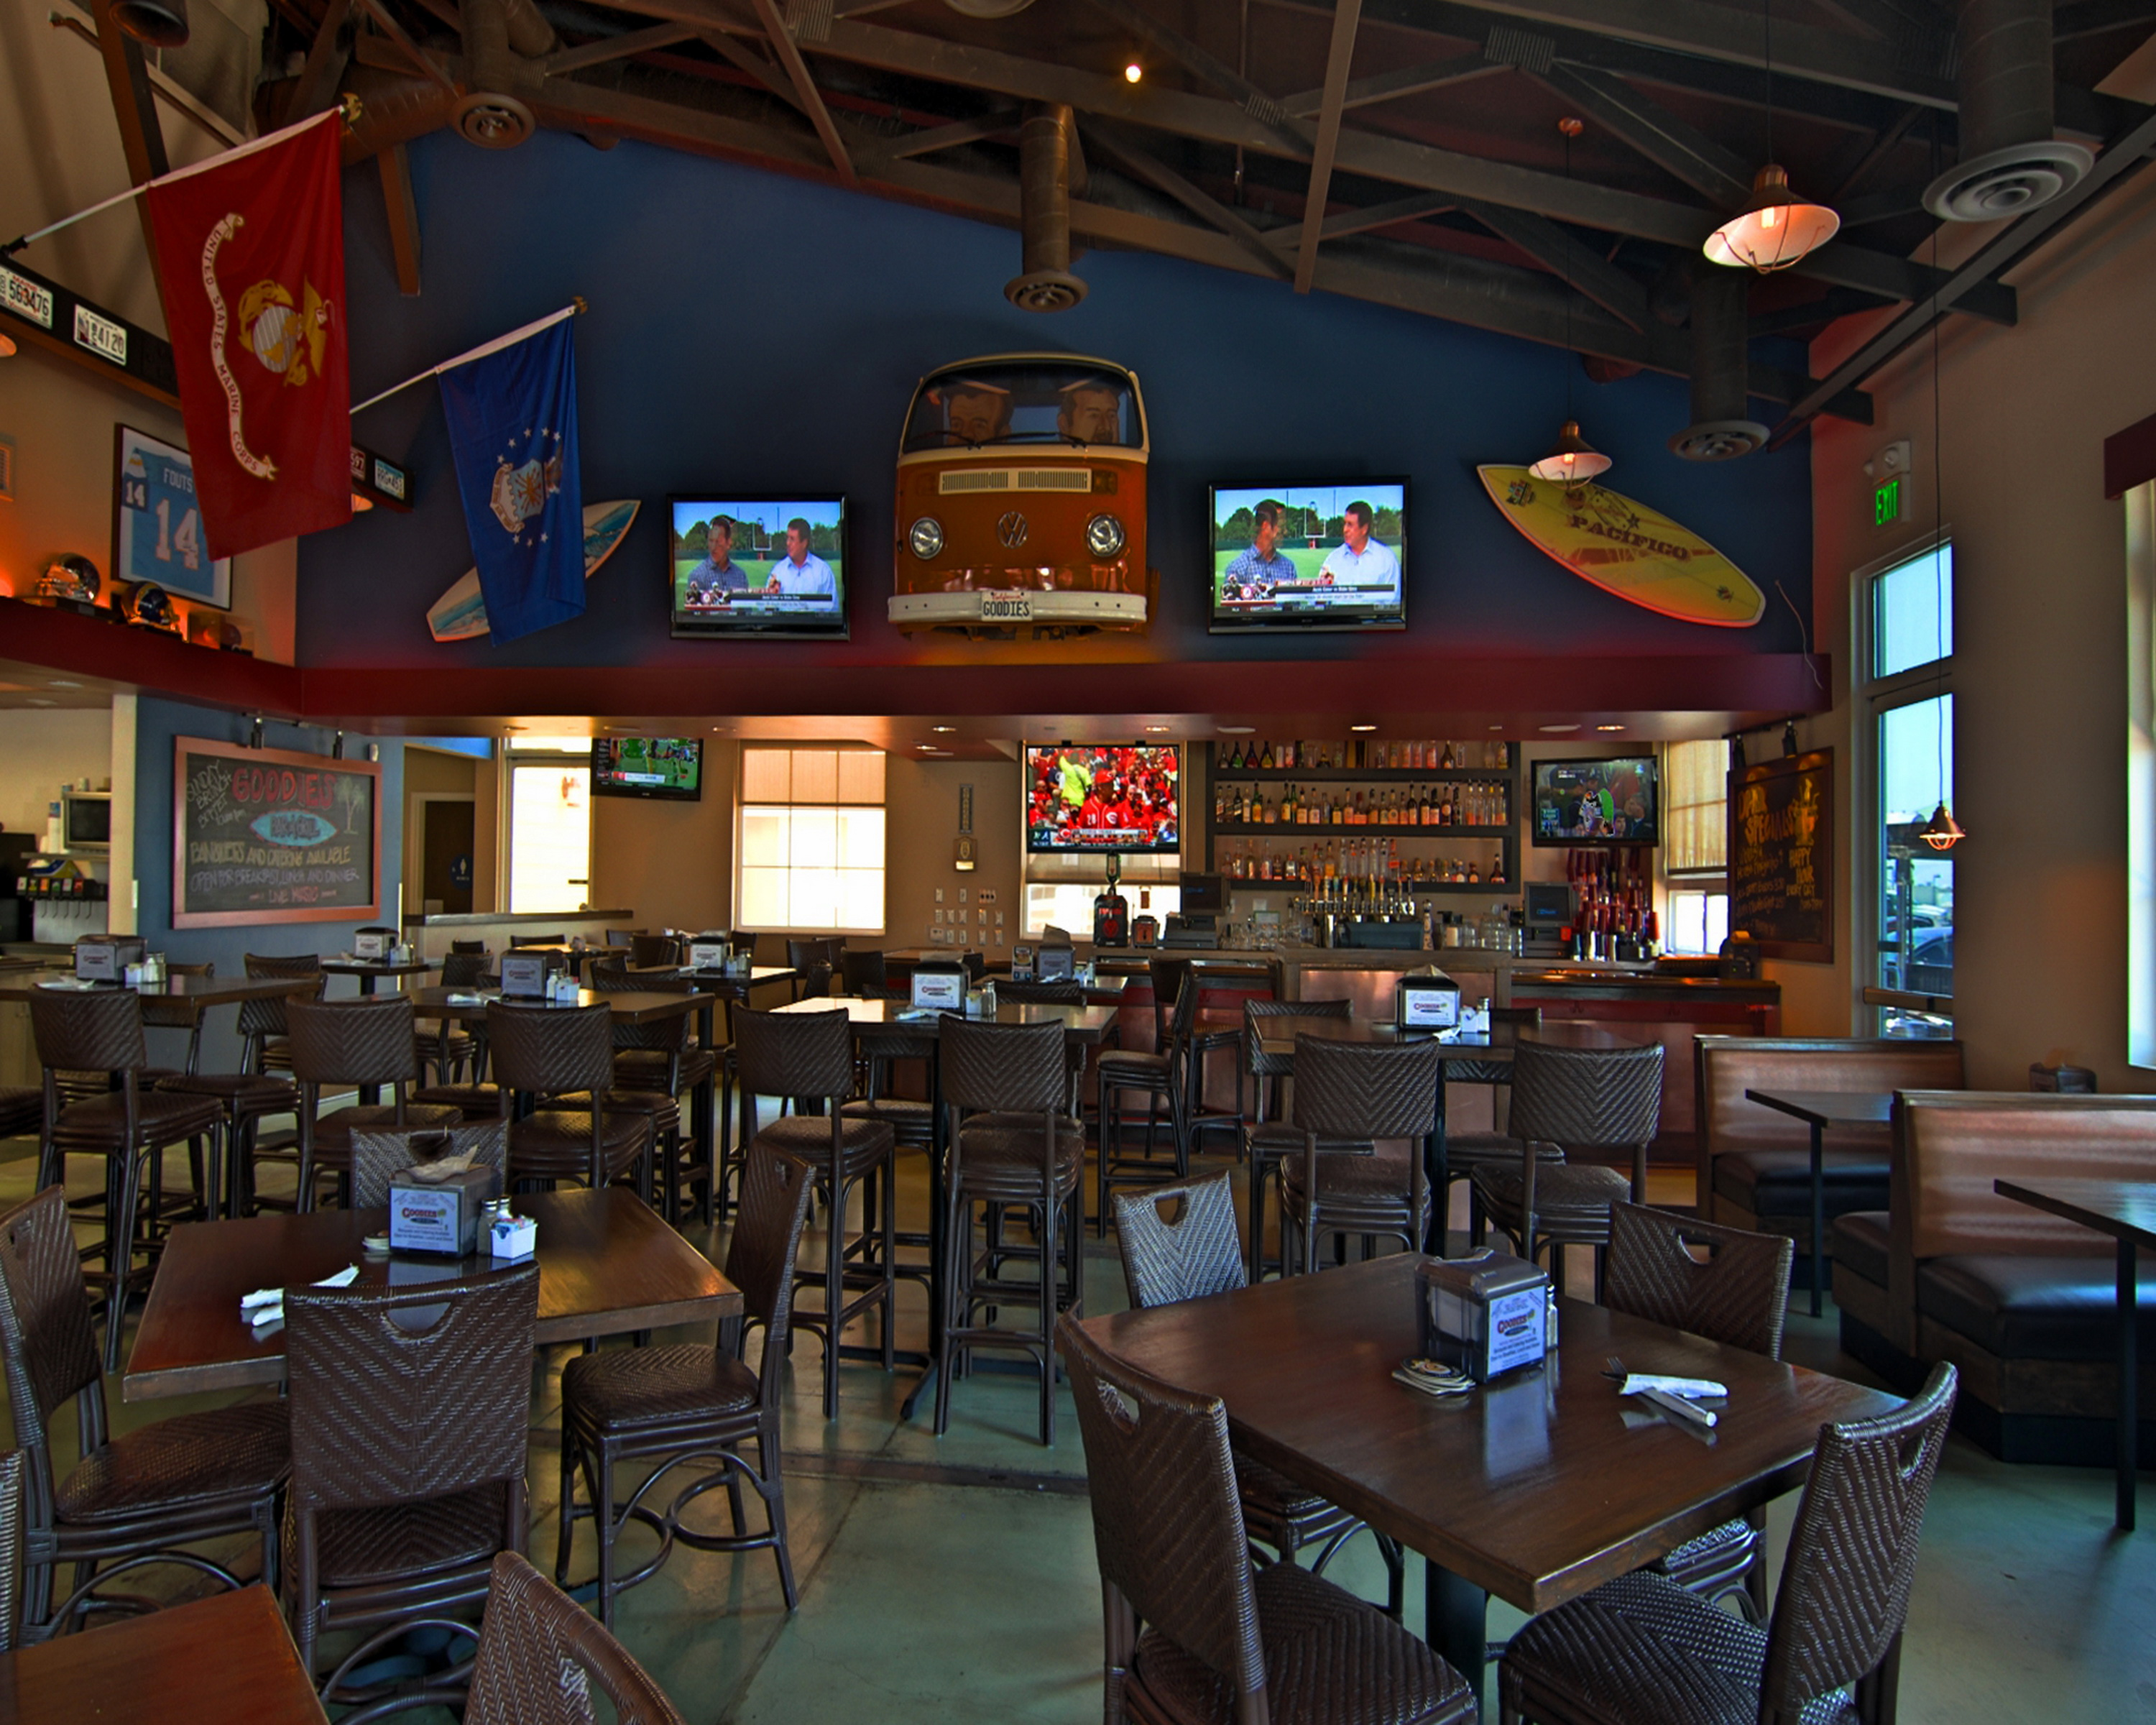 Goodies bar and grill restaurants in national city ca - Restaurant bar and grill ...